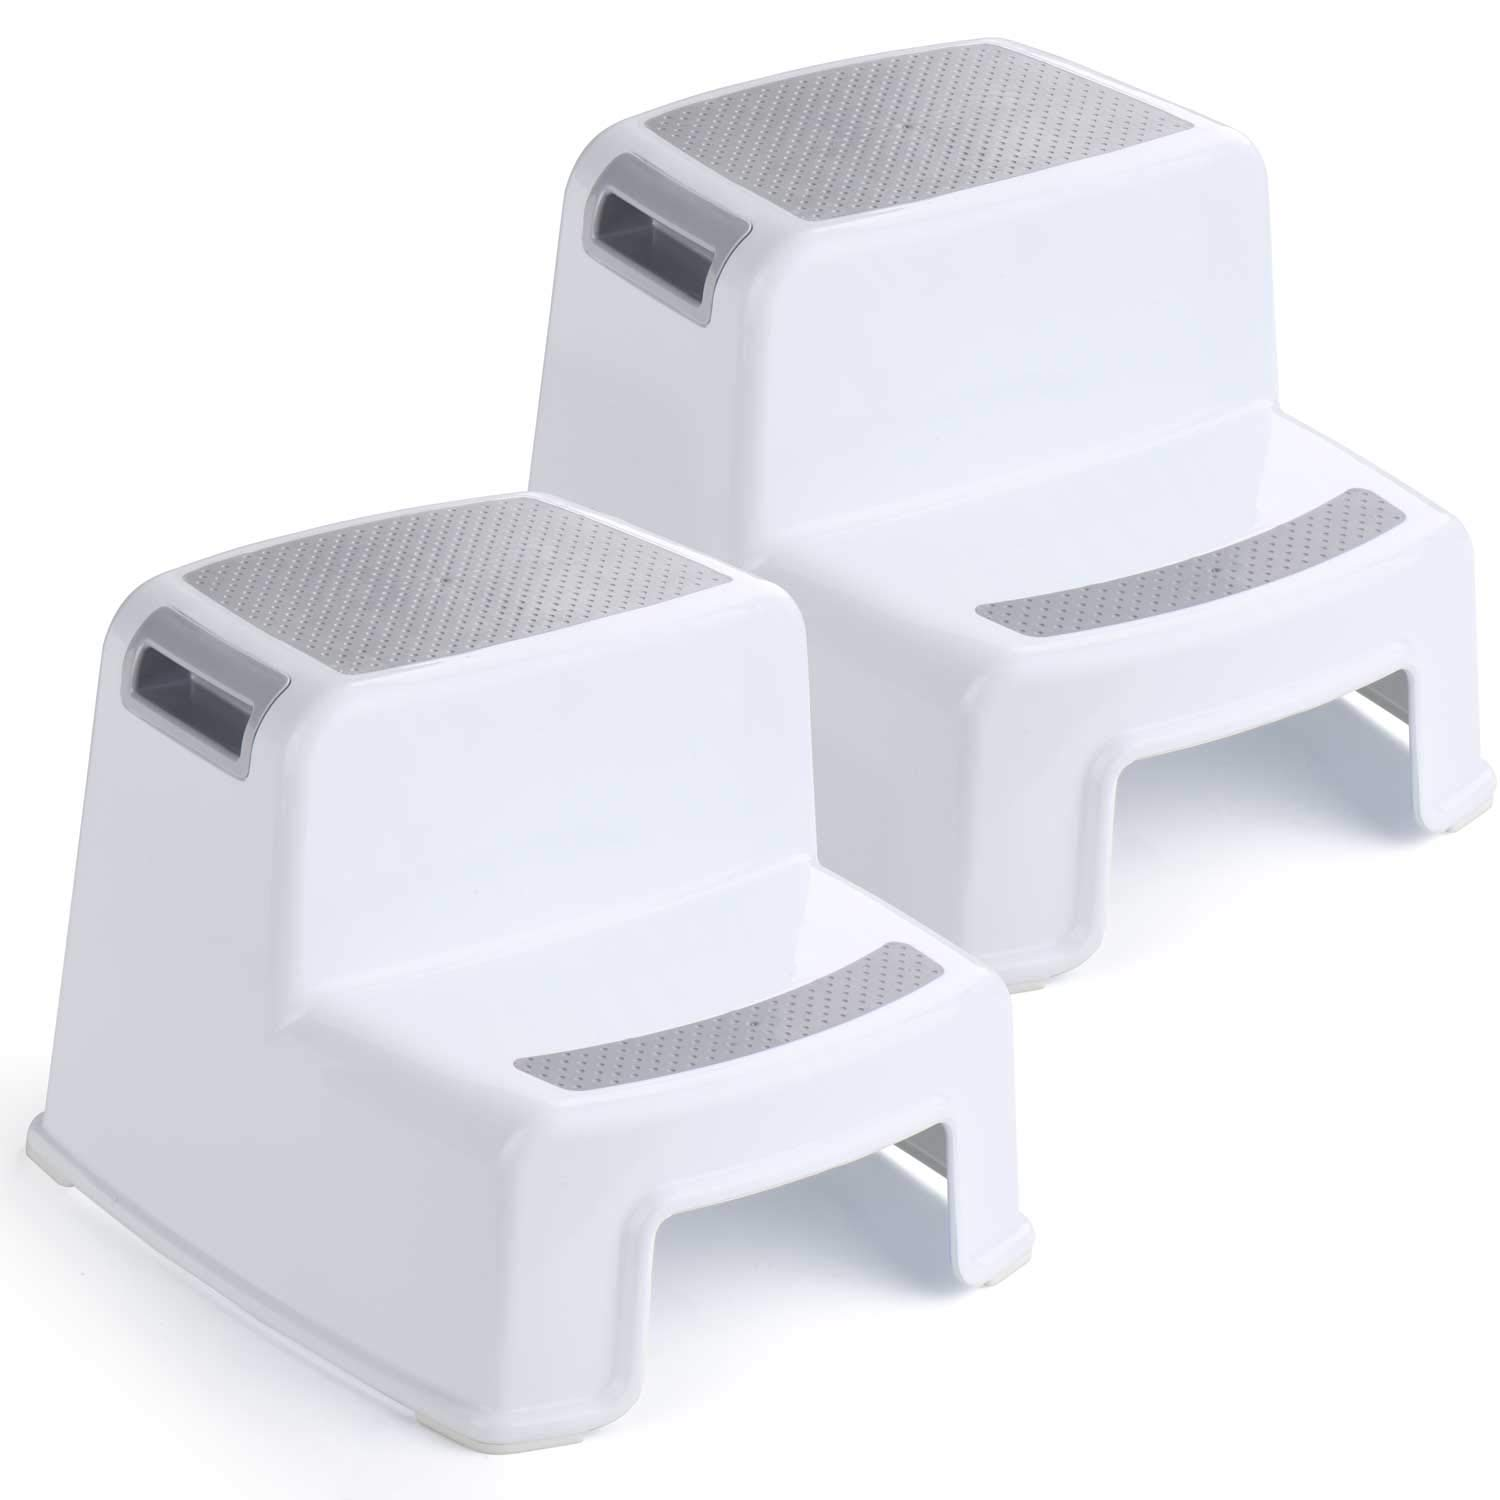 ACKO 2 Step Stool for Kids - Childrens,Toddler Stool with Slip Resistant Soft Grip for Safety as Bathroom Toilet Potty Training Stool and Kitchen Stepping Stool | Dual Height & Wide Two Step-BPA Free by Acko